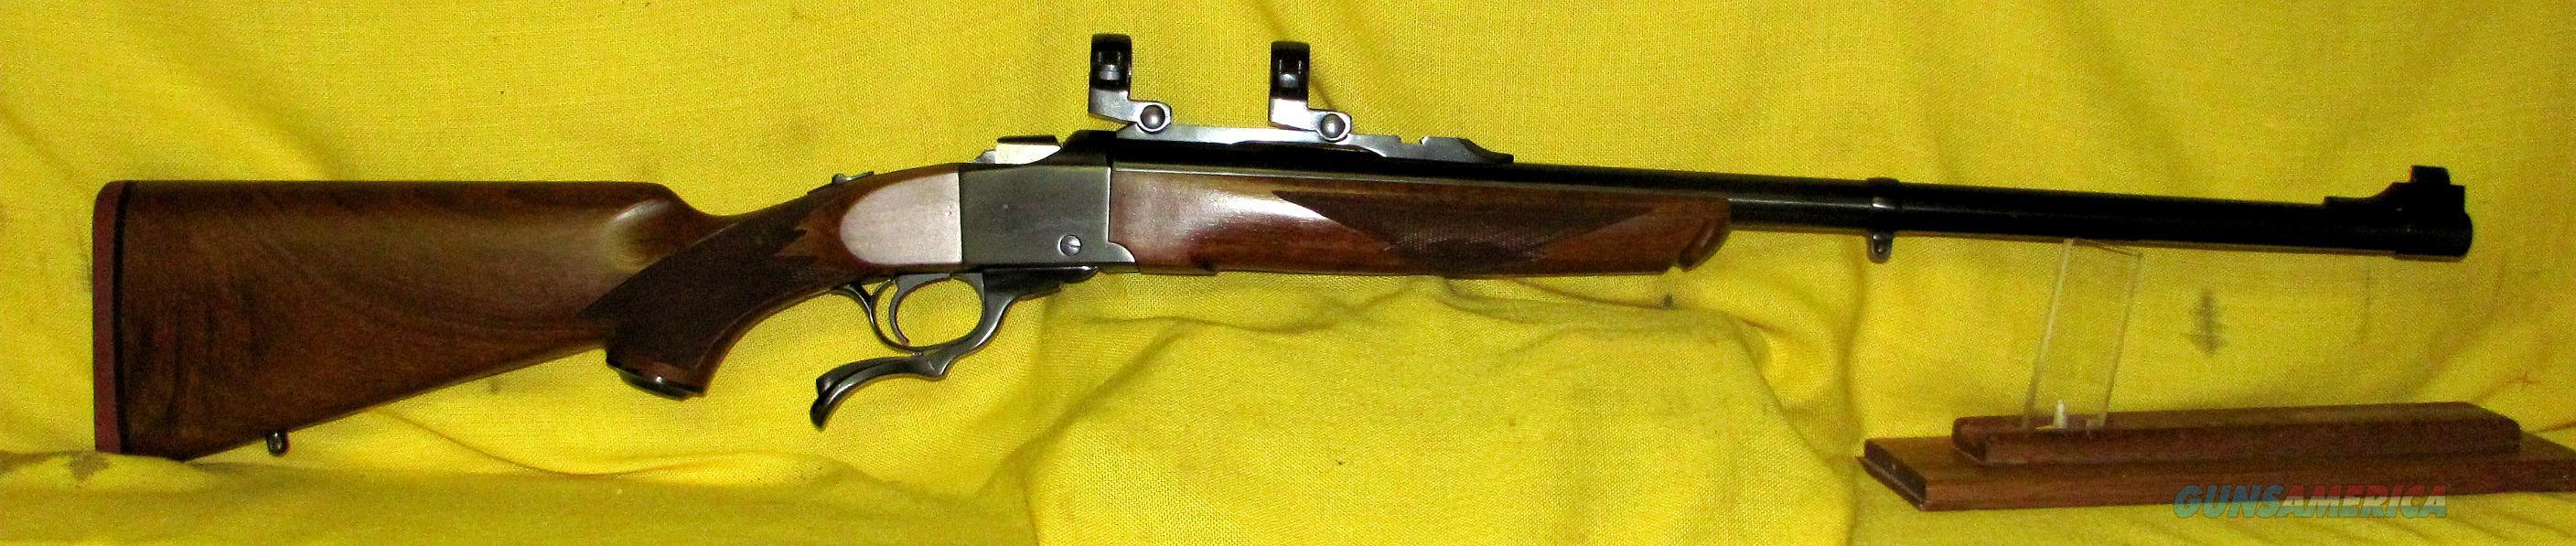 RUGER (TROPICAL) NO1 (1H)  Guns > Rifles > Ruger Rifles > #1 Type